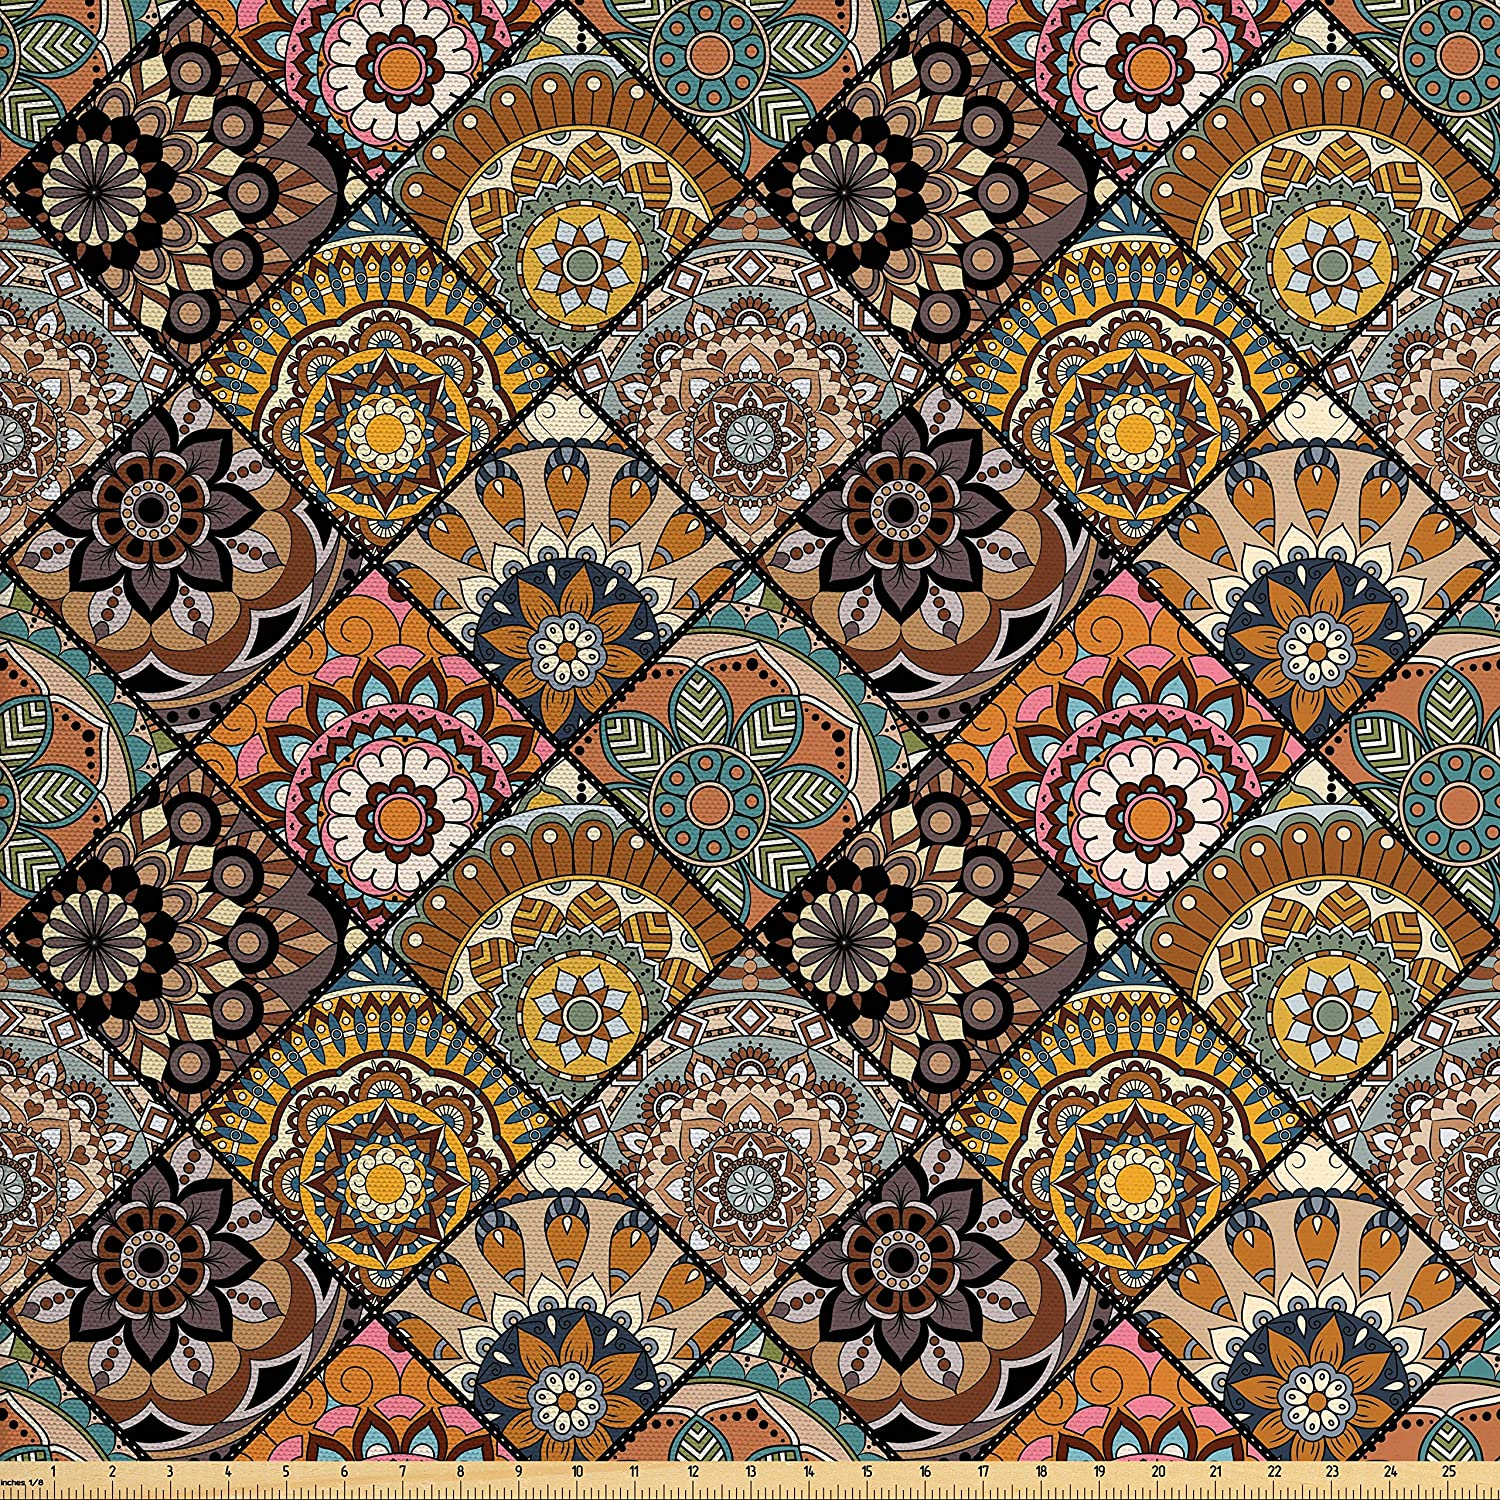 Ambesonne Moroccan Fabric by The Yard, Mexican Ornaments with Abstract Old Fashioned Mandala Checkered, Decorative Fabric for Upholstery and Home Accents, Multicolor